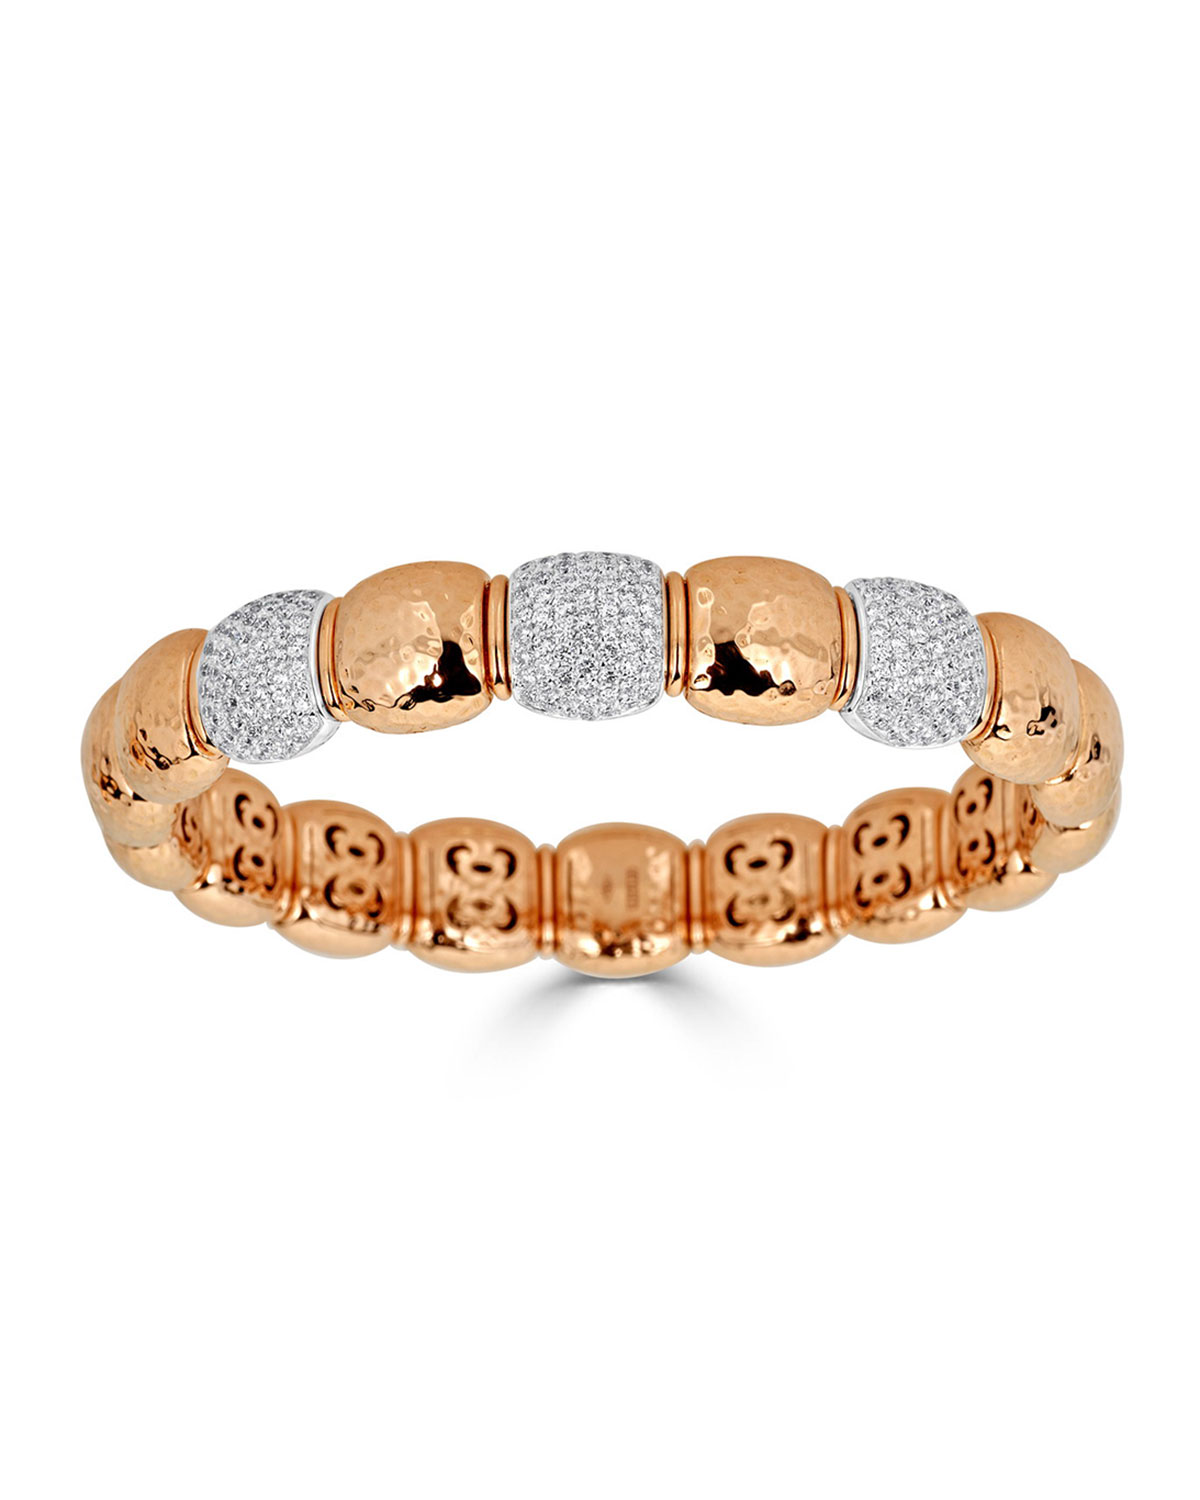 ZYDO Stretch 18K Gold Triple-Diamond Pave Bracelet